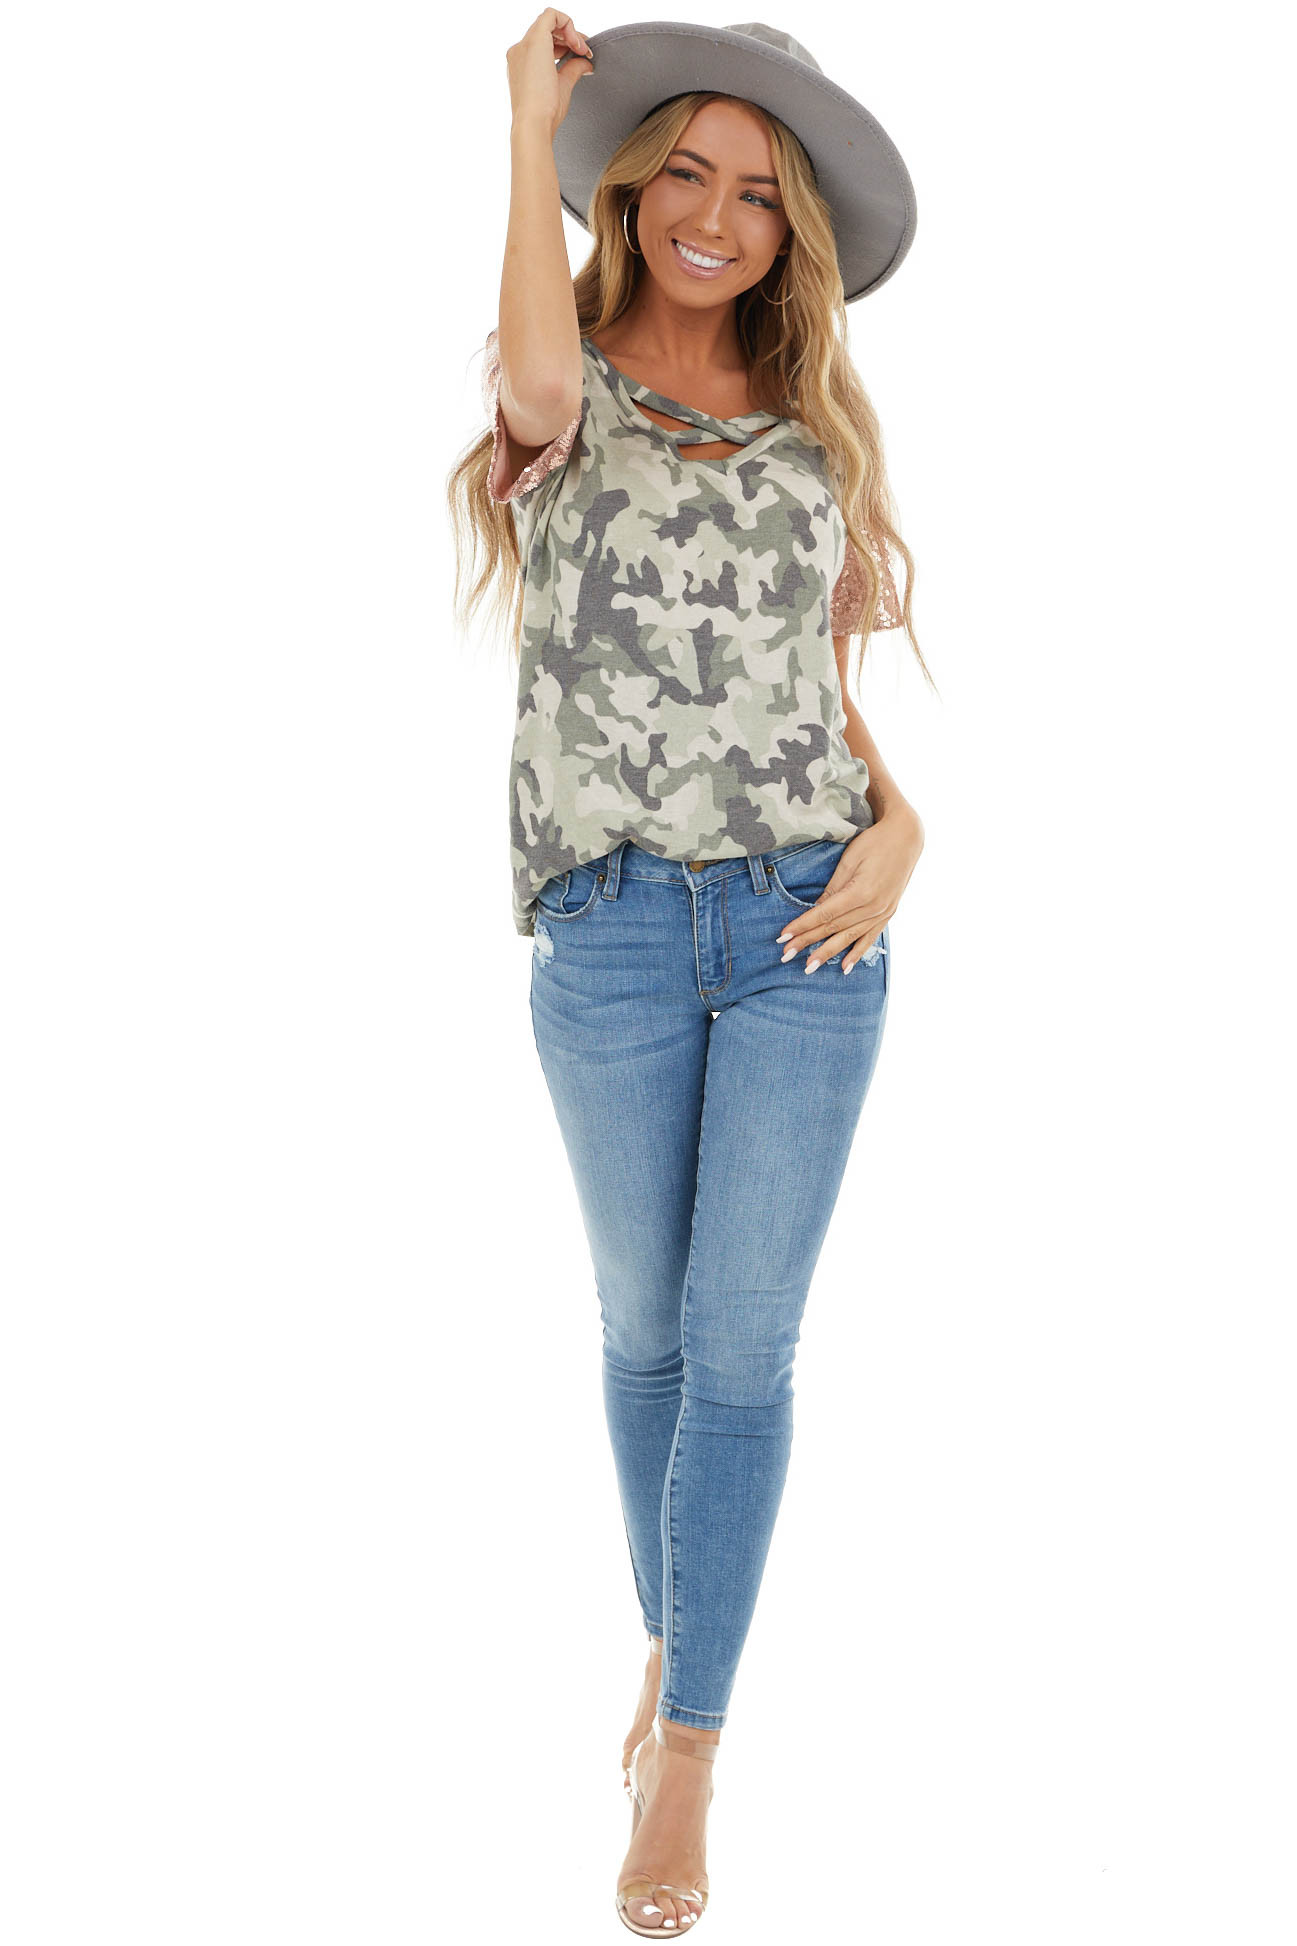 Dusty Olive Camo V Neck Knit Top with Sequin Shoulders